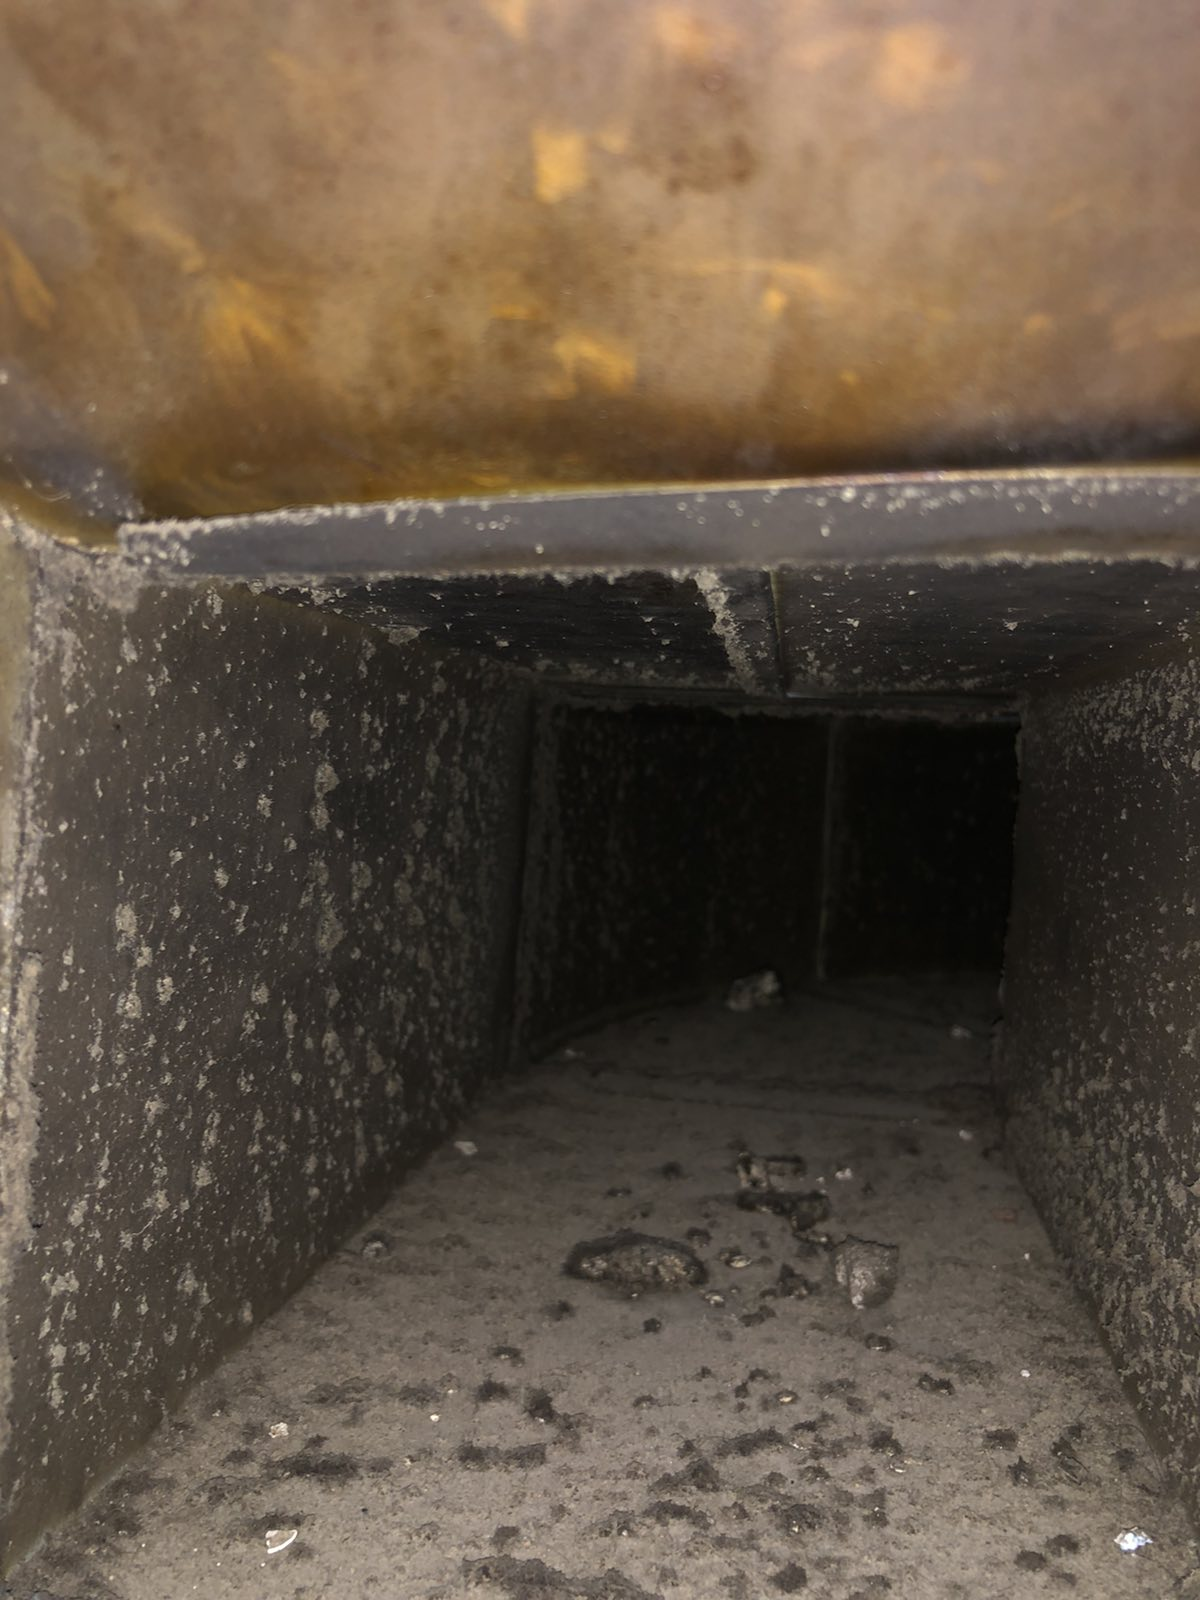 dryer vent cleaning average cost